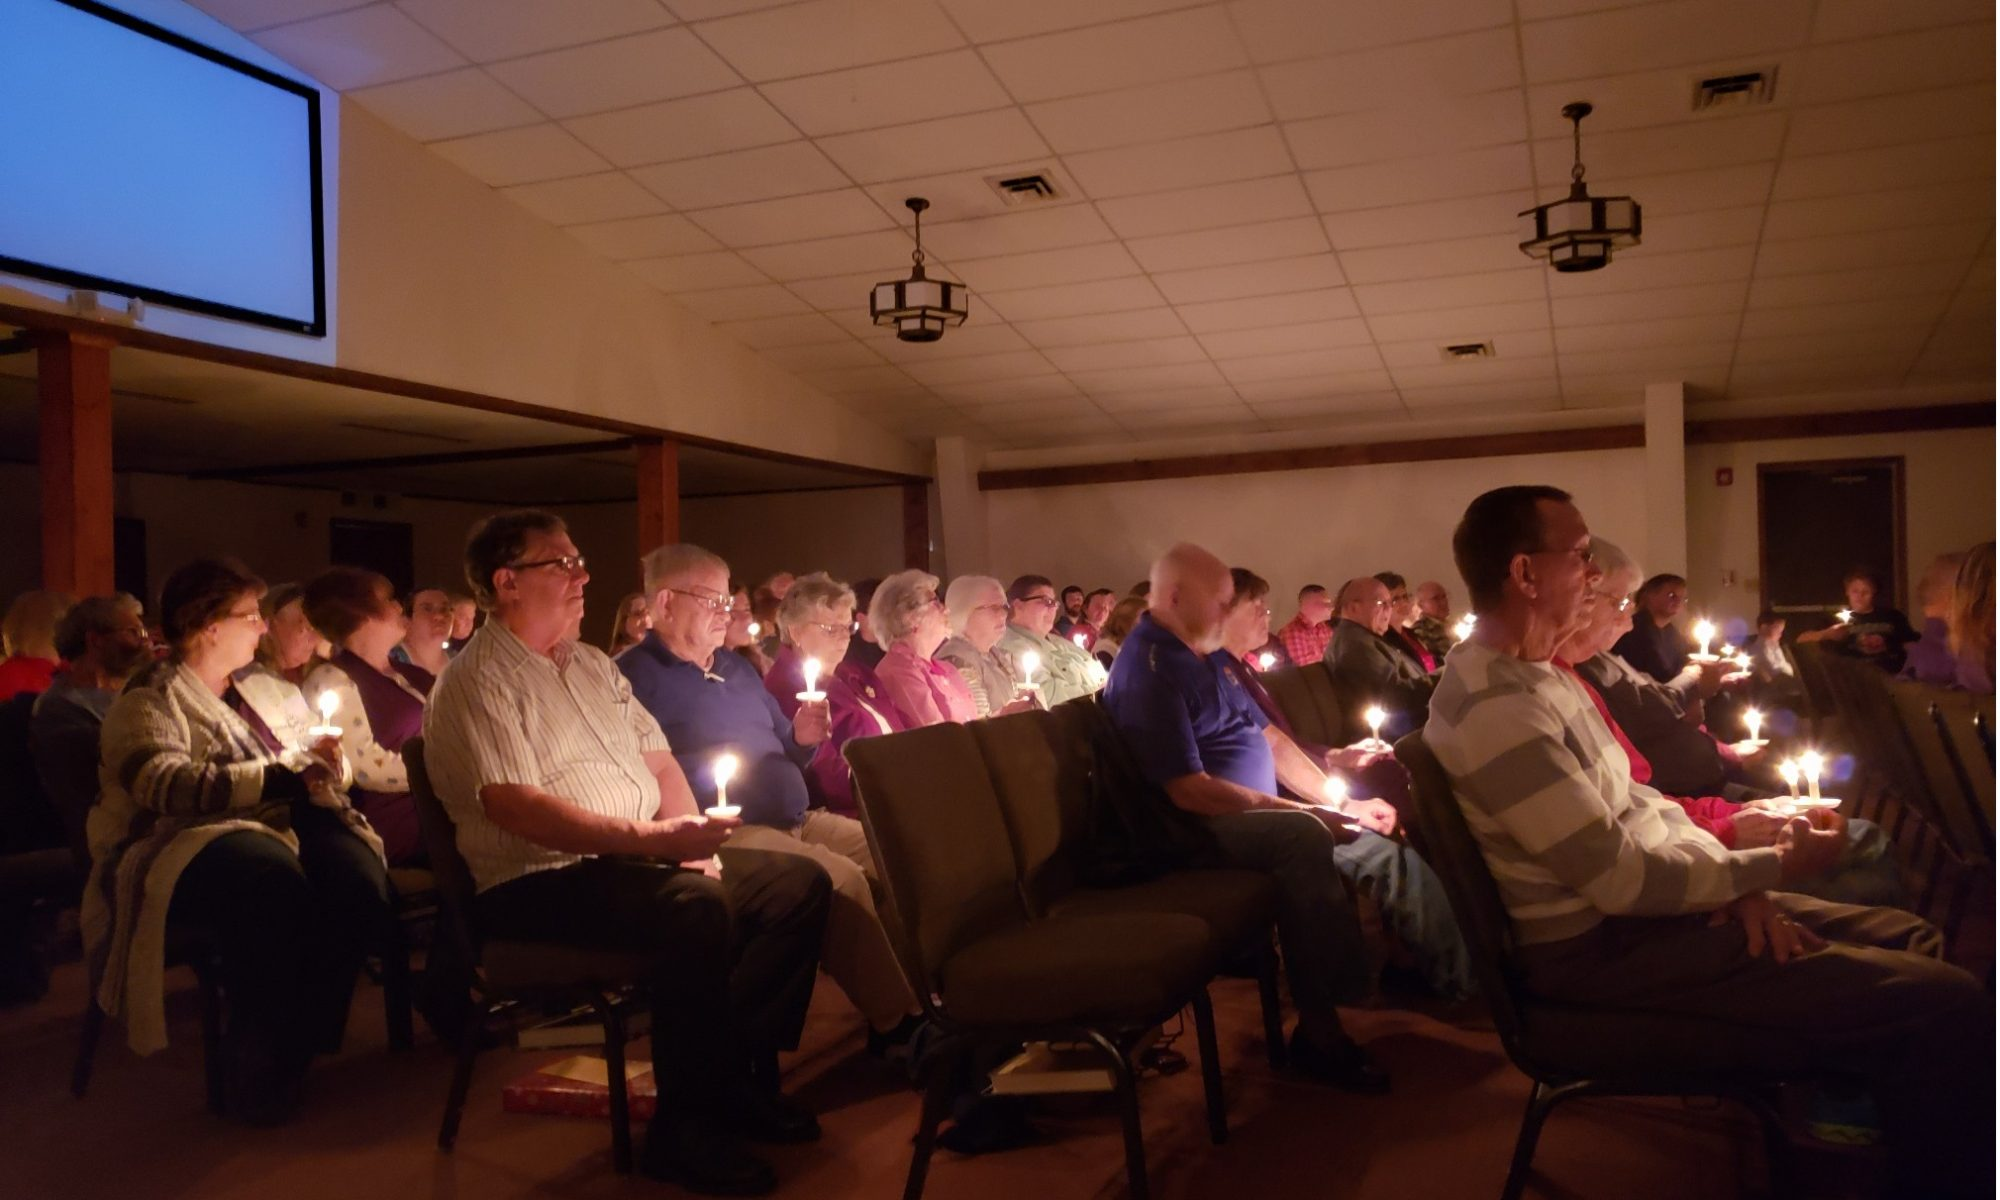 Our Congregation at Christmas